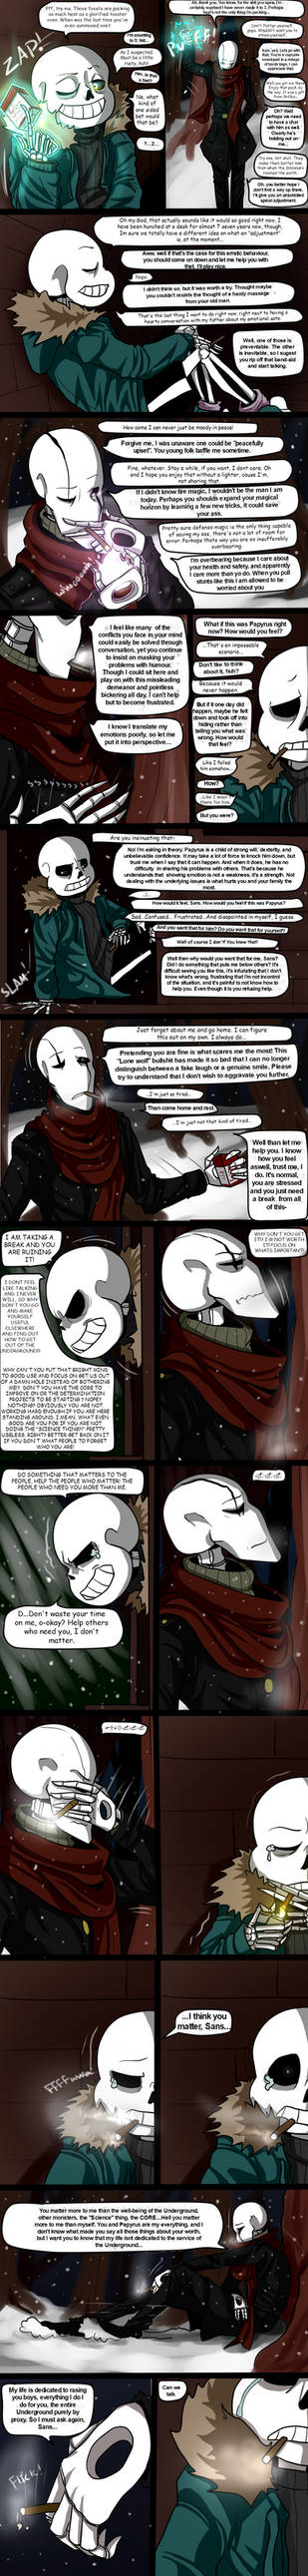 Bad days part 2- page 2